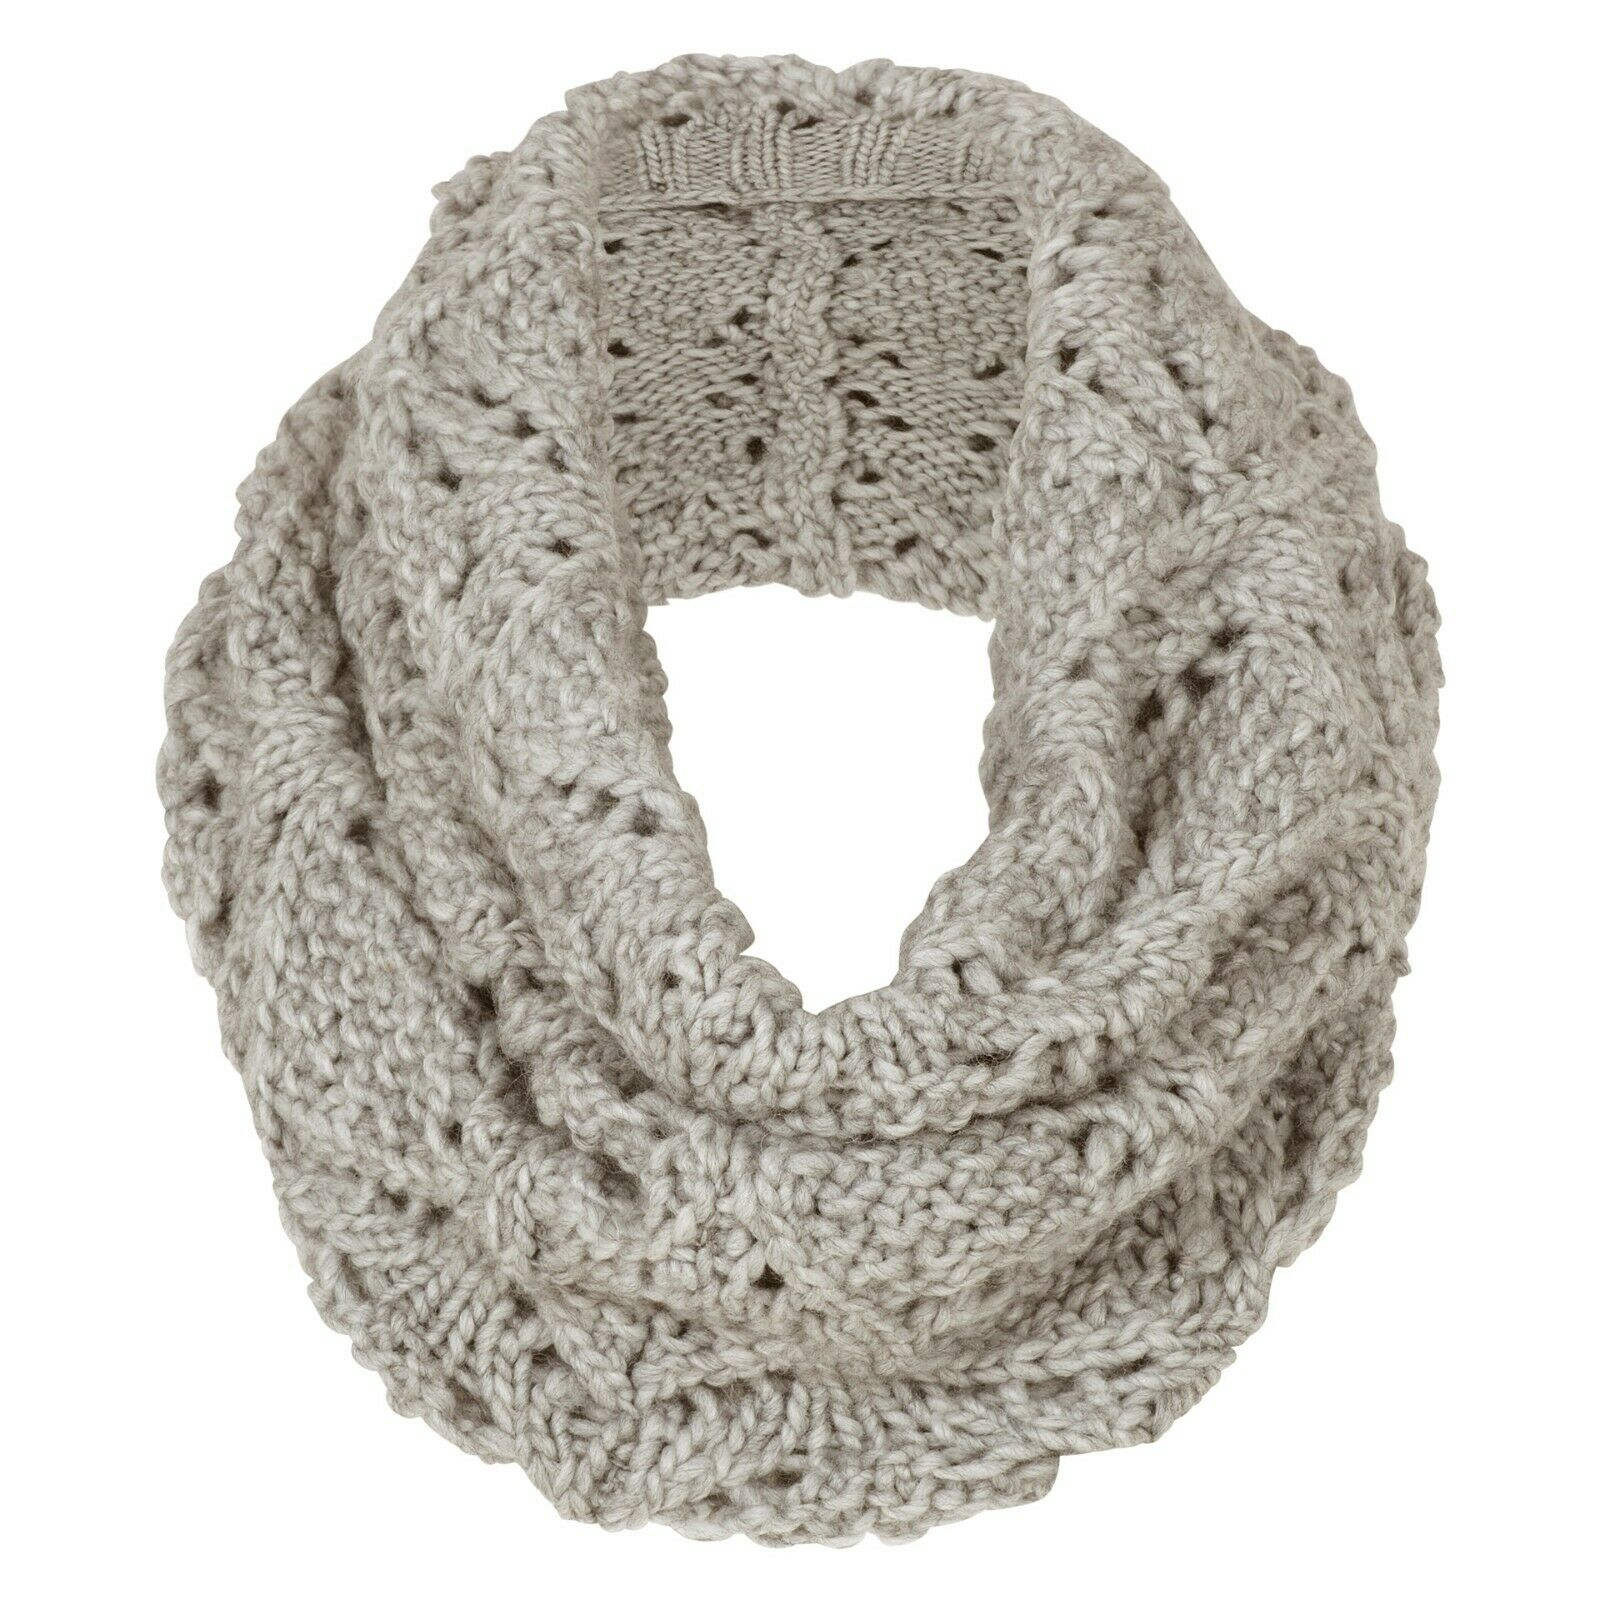 Aran Traditions Womans Ladies Winter Warm Knitted Style Cable Snood Oatmeal Marl